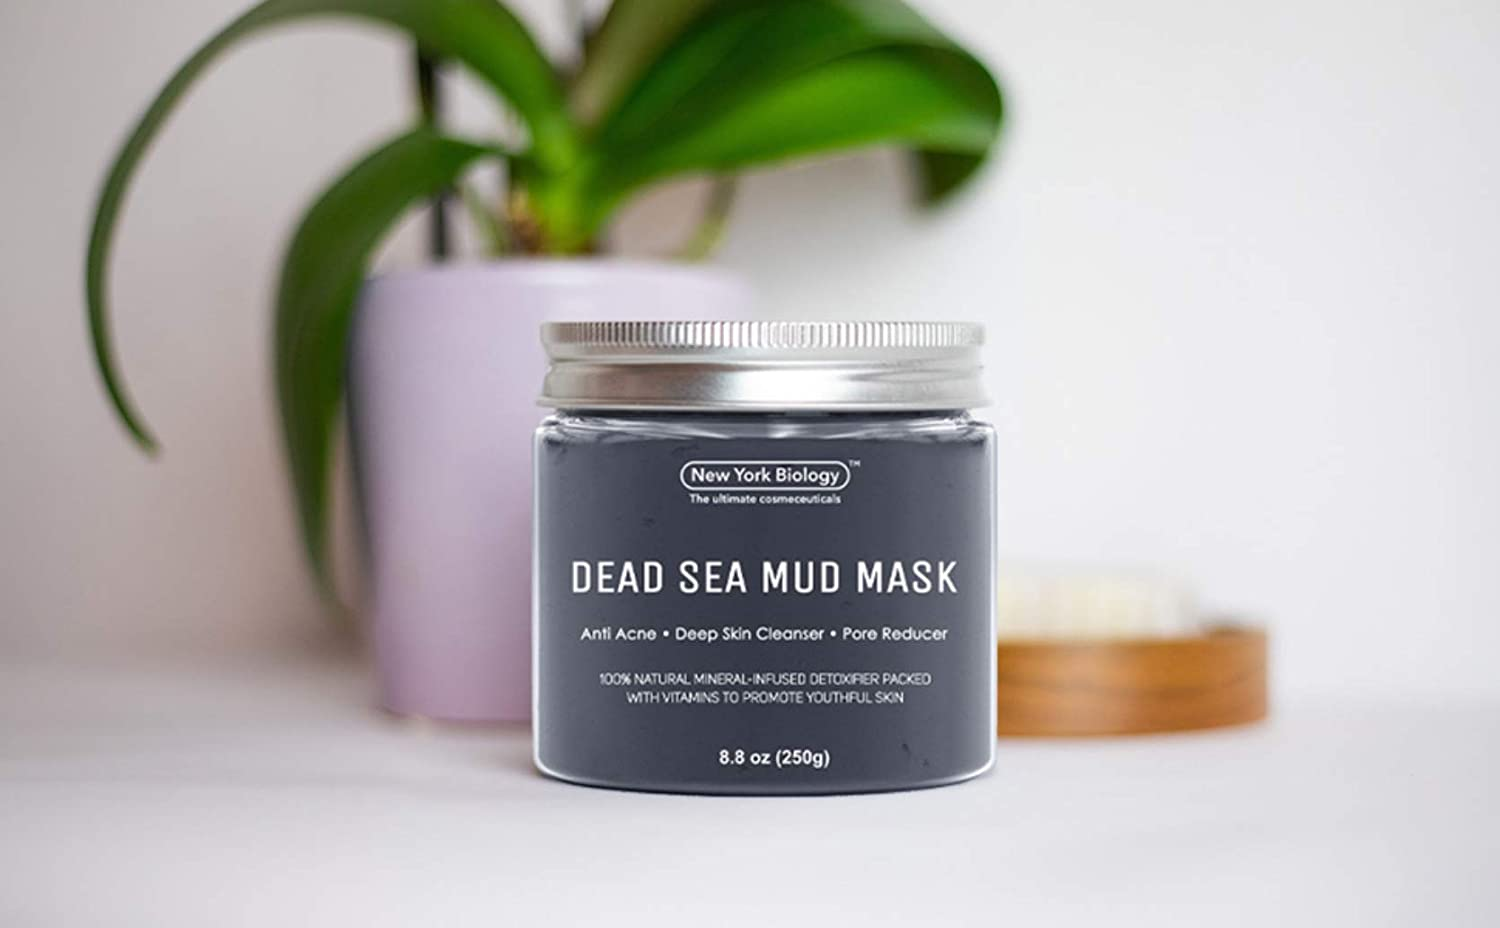 New York Biology Dead Sea Mud Mask for Face and Body - Spa Quality Pore Reducer for Acne, Blackheads and Oily Skin - Tightens Skin for A Healthier Complexion - 8.8 oz… : Beauty